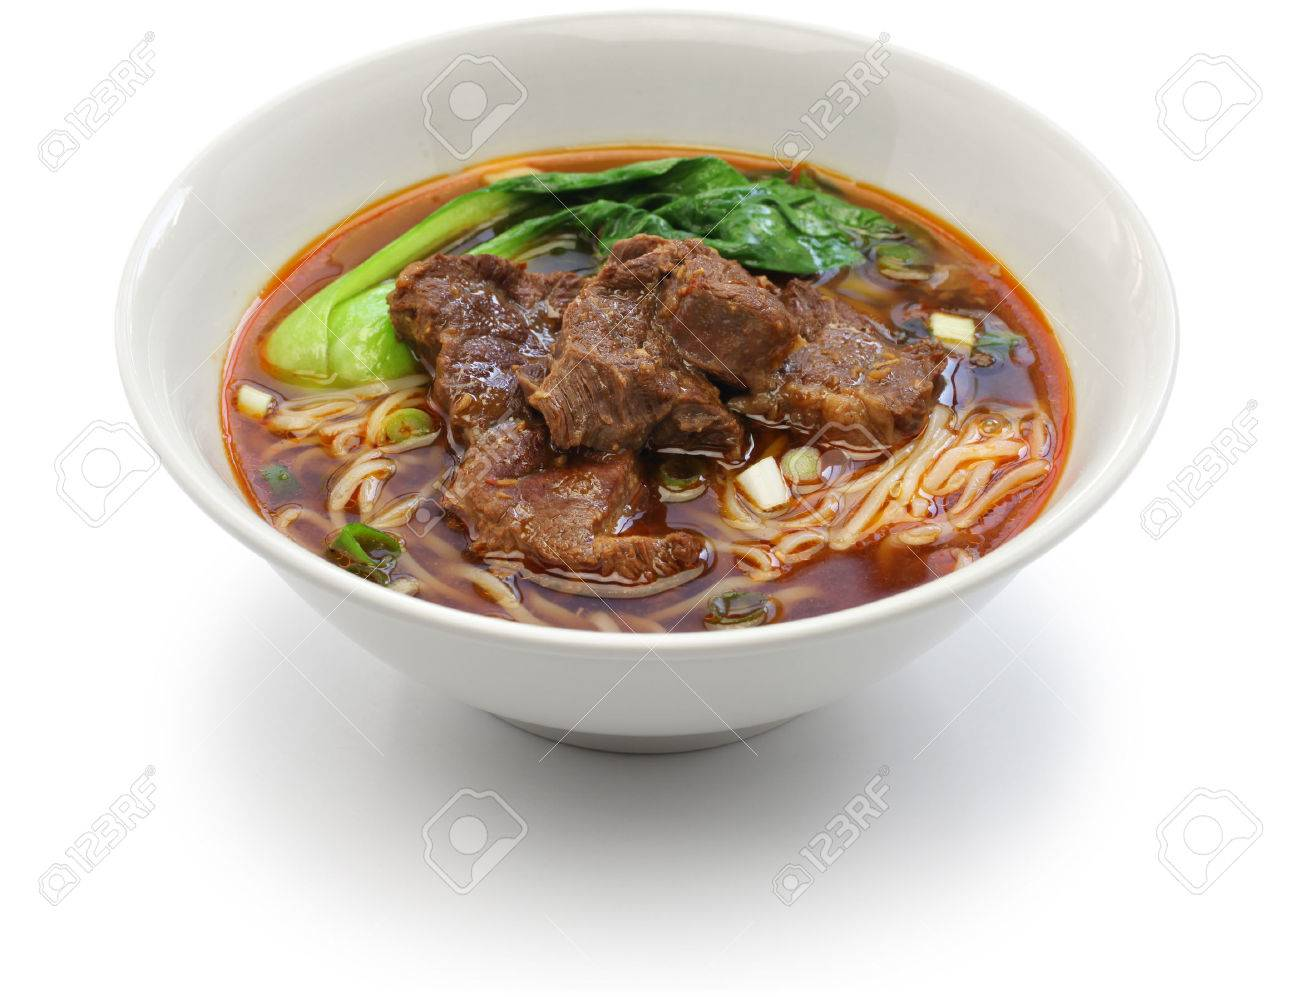 Taiwanese beef noodle soup Stock Photo - 57047448